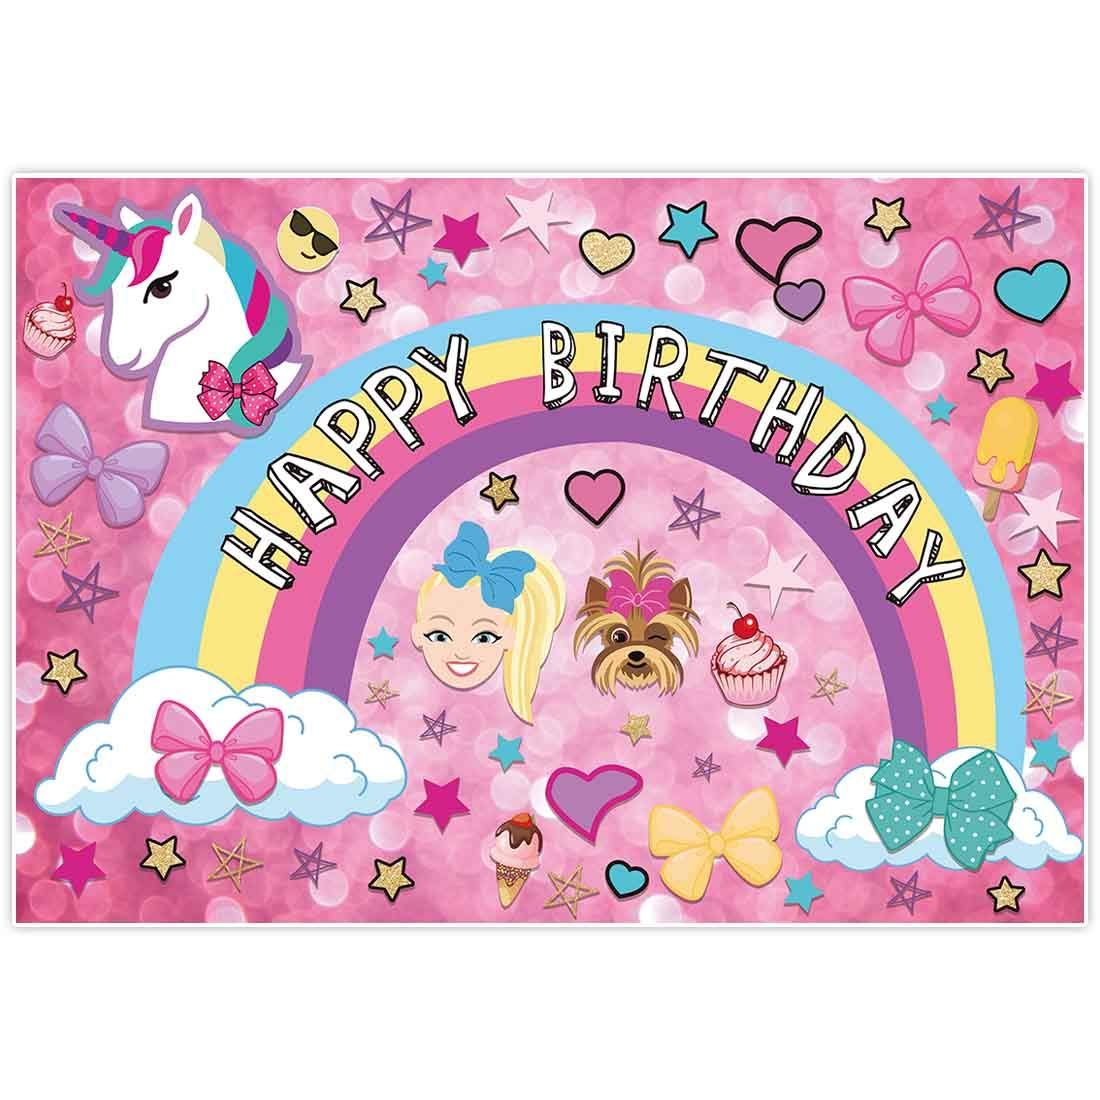 Allenjoy 7x5ft Colorful Cartoon Backdrop for Sweet 16 Happy 18 Dream Crazy Big Theme Bokeh Photography Background Birthday Party Banner Unicorn Puppy Girl Glitter Rainbow Baby Shower Photo Booth Decor by Allenjoy